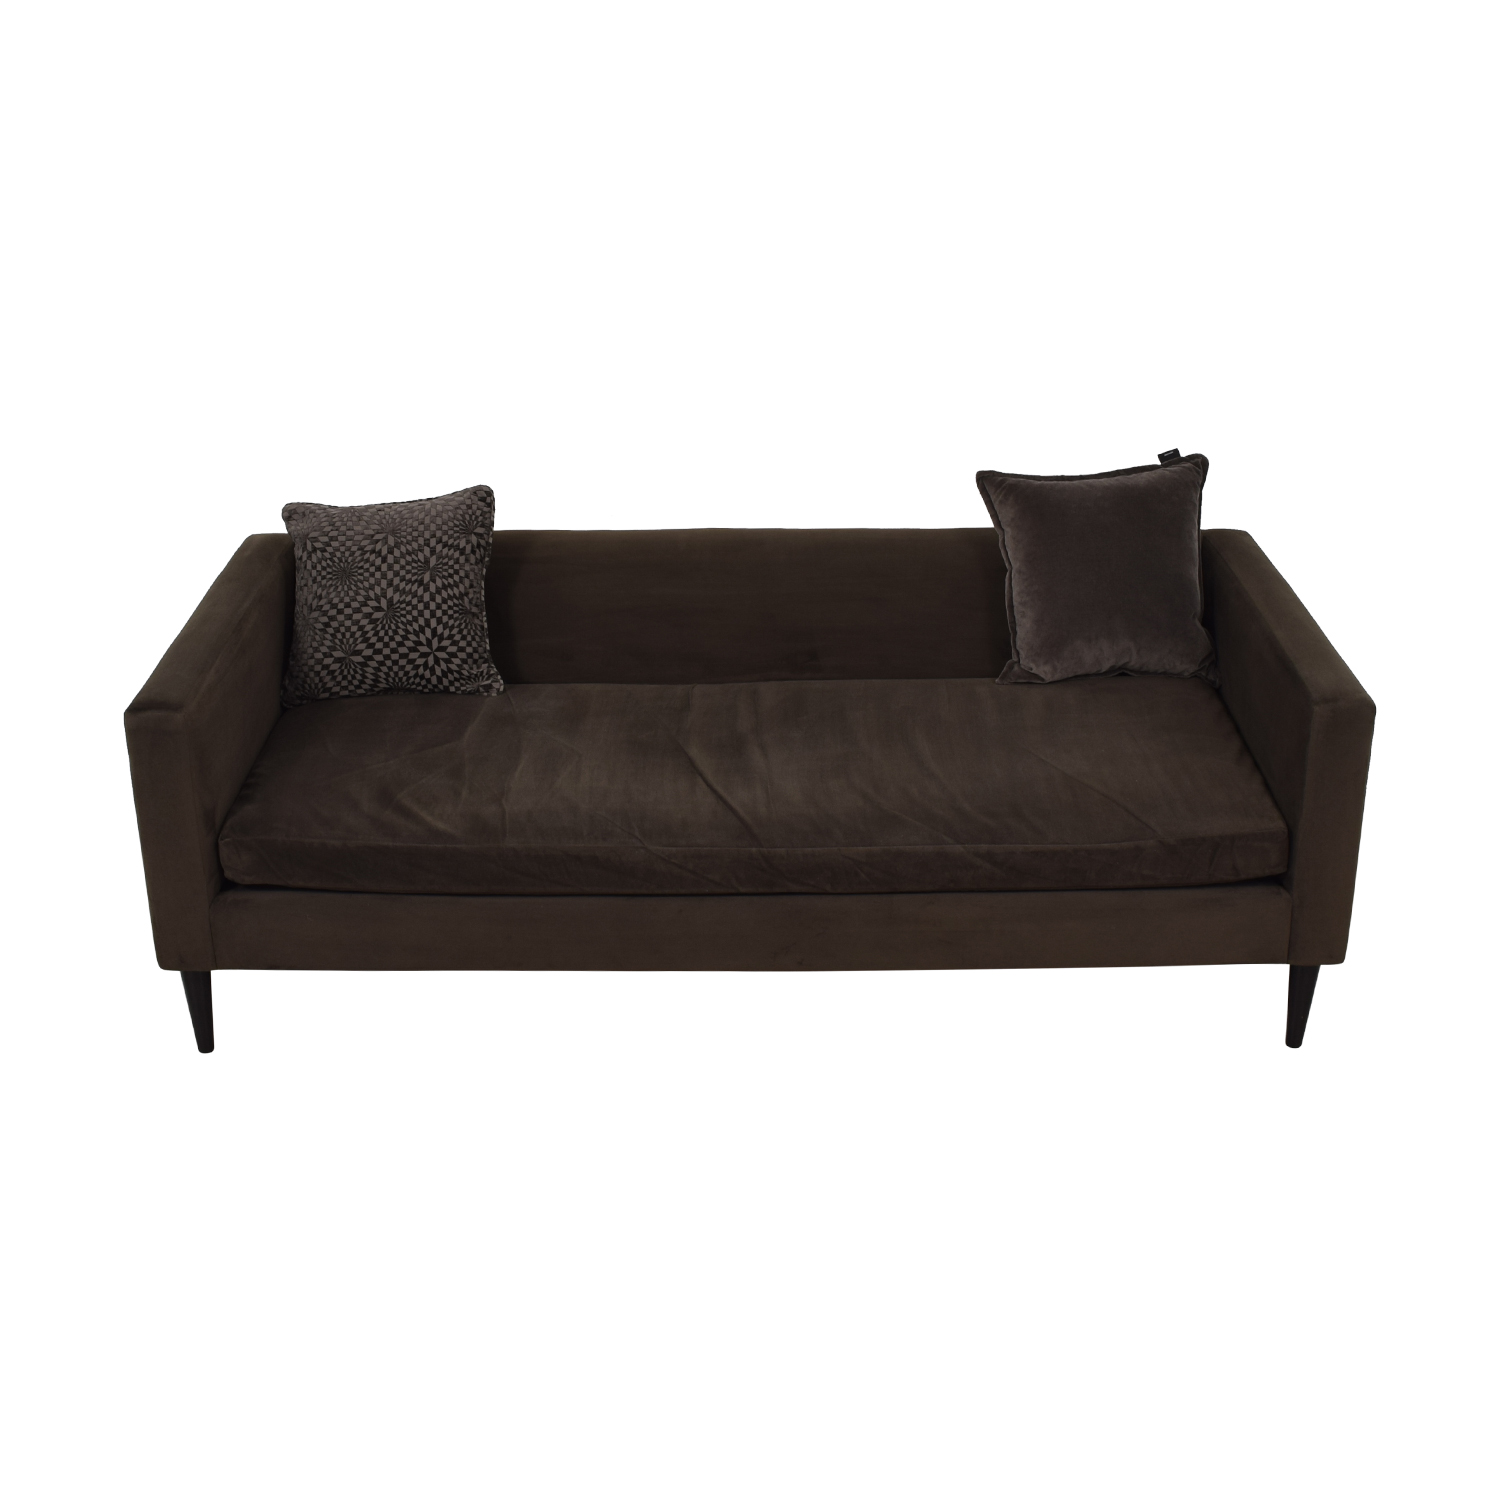 CB2 CB2 Brown Sofa with Two Throw Pillows used